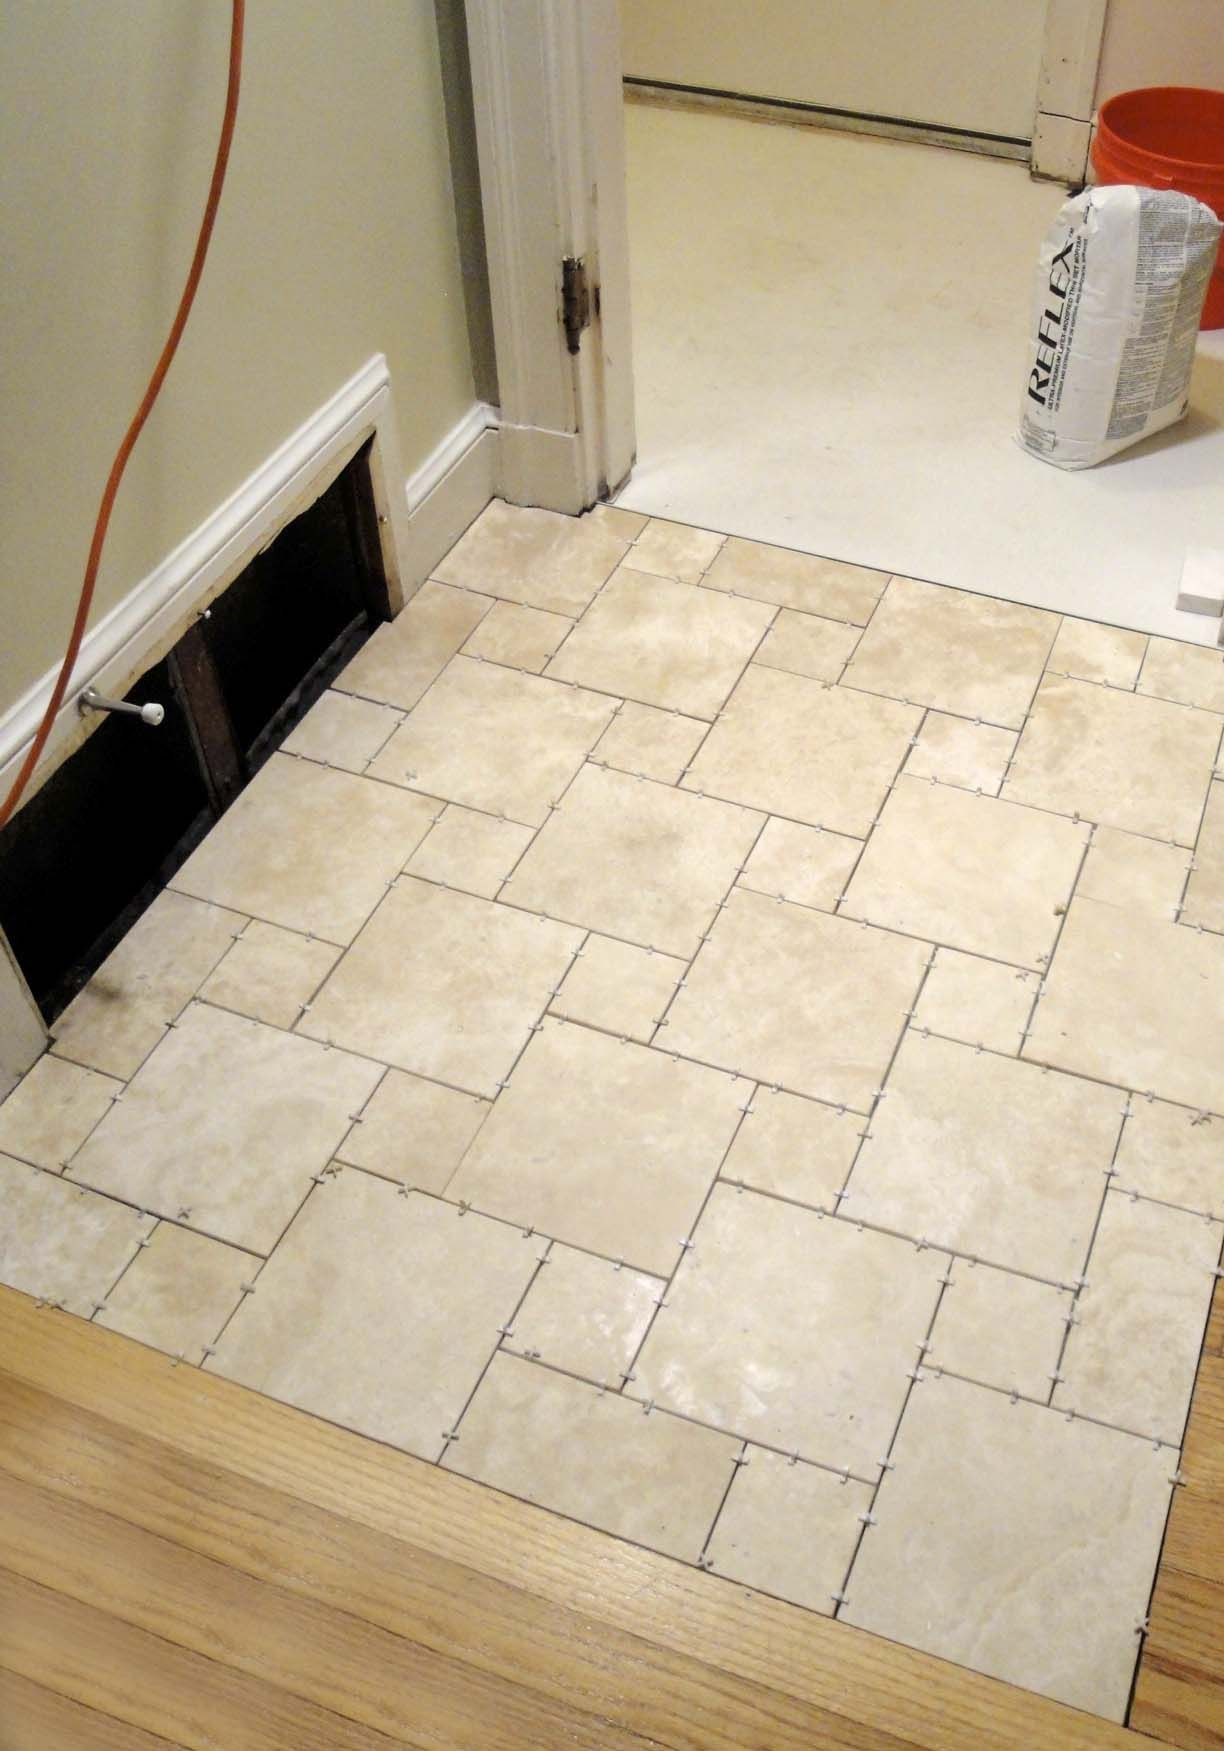 Enjoyable Travertine White Porcelain Bathroom Floor Tile Ideas As ...